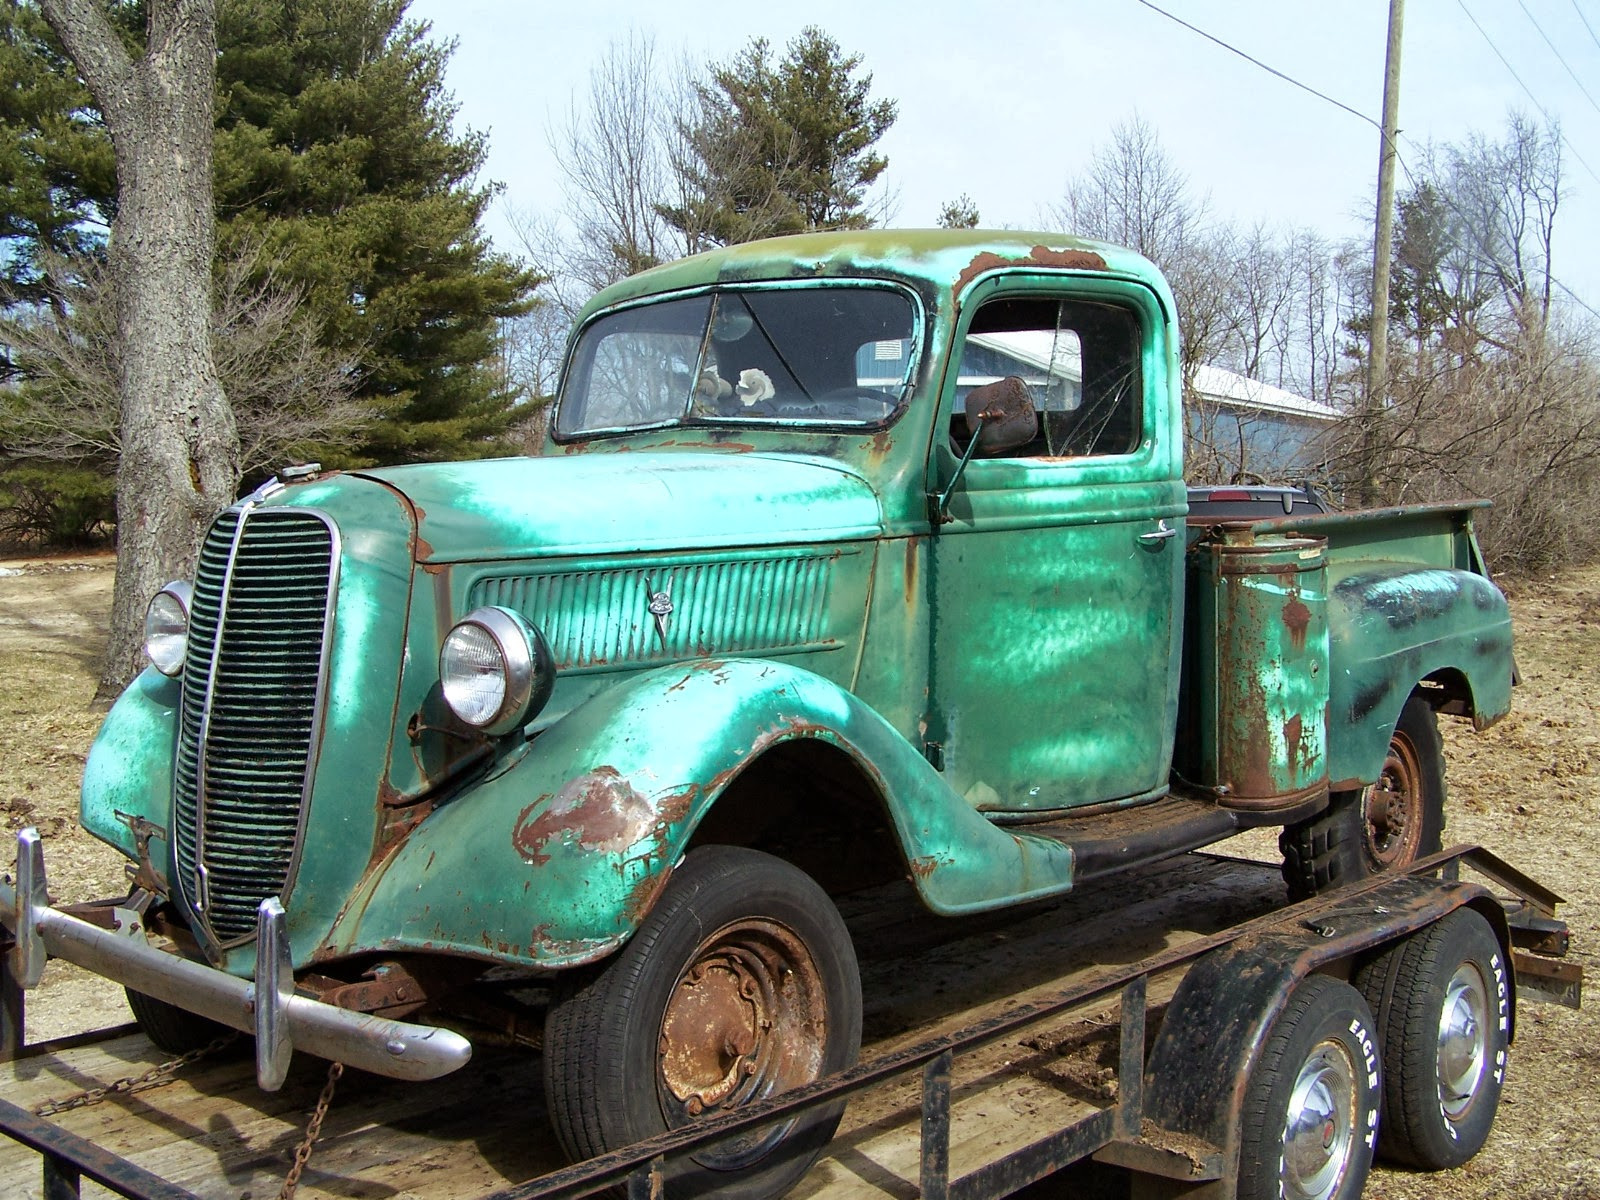 Fpu on Ford Flathead V8 Crate Engine For Sale